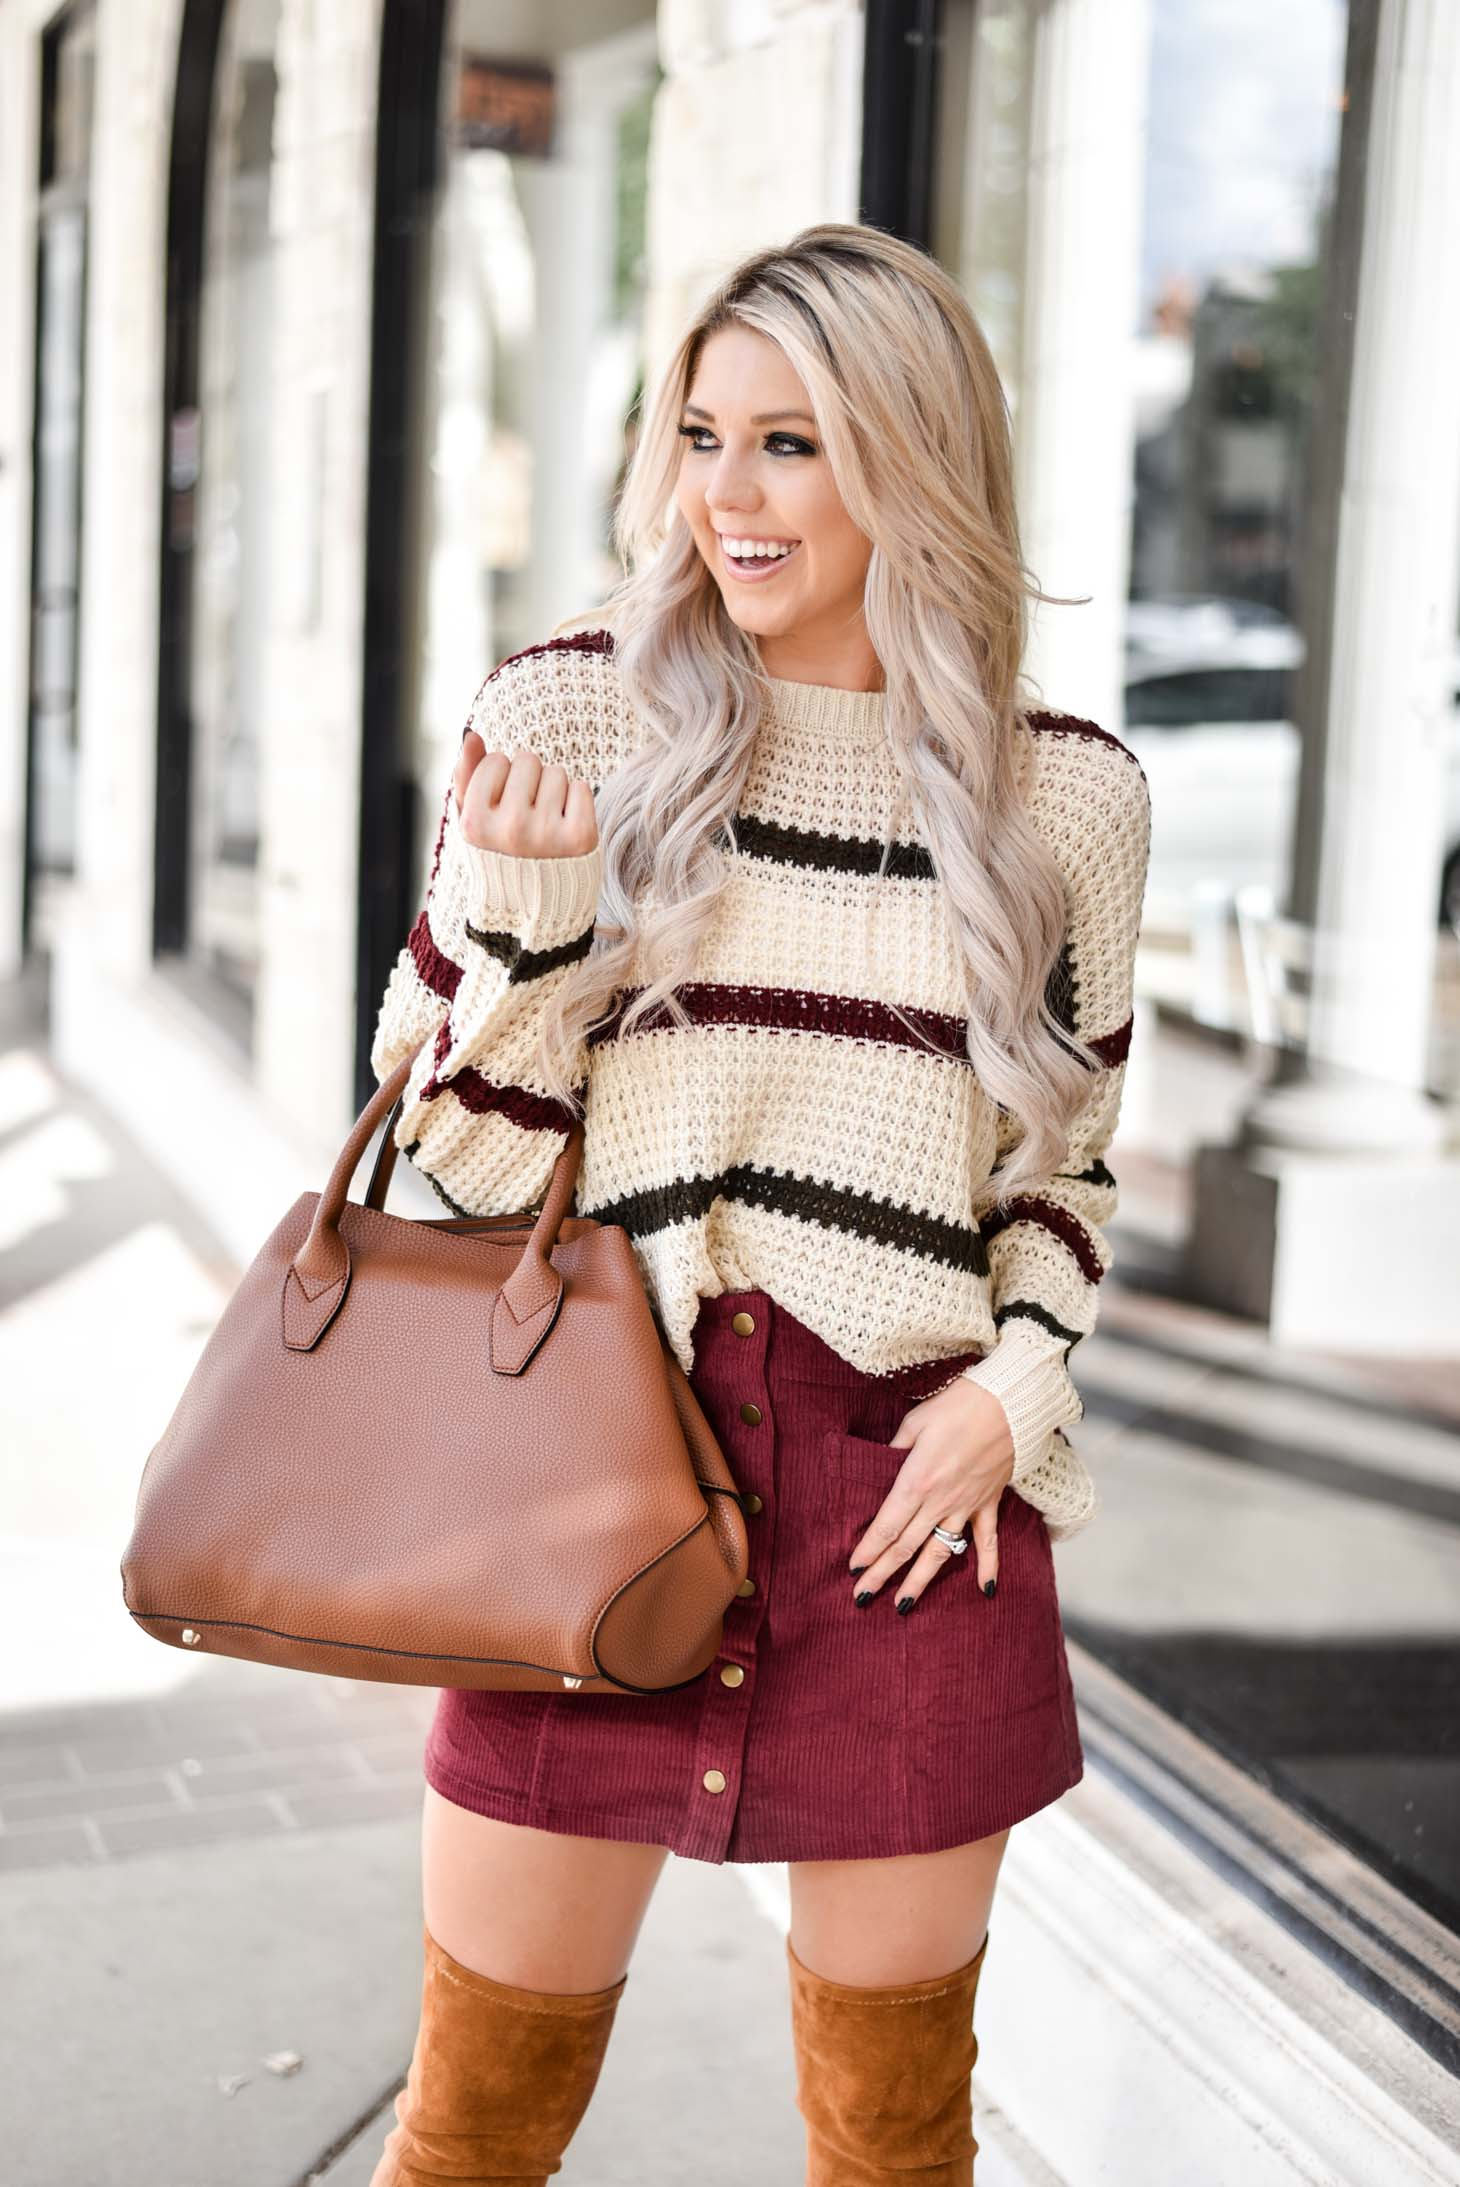 Erin Elizabeth of Wink and a Twirl shares the perfect fall skirt and sweater combo from Pink Lily Boutique